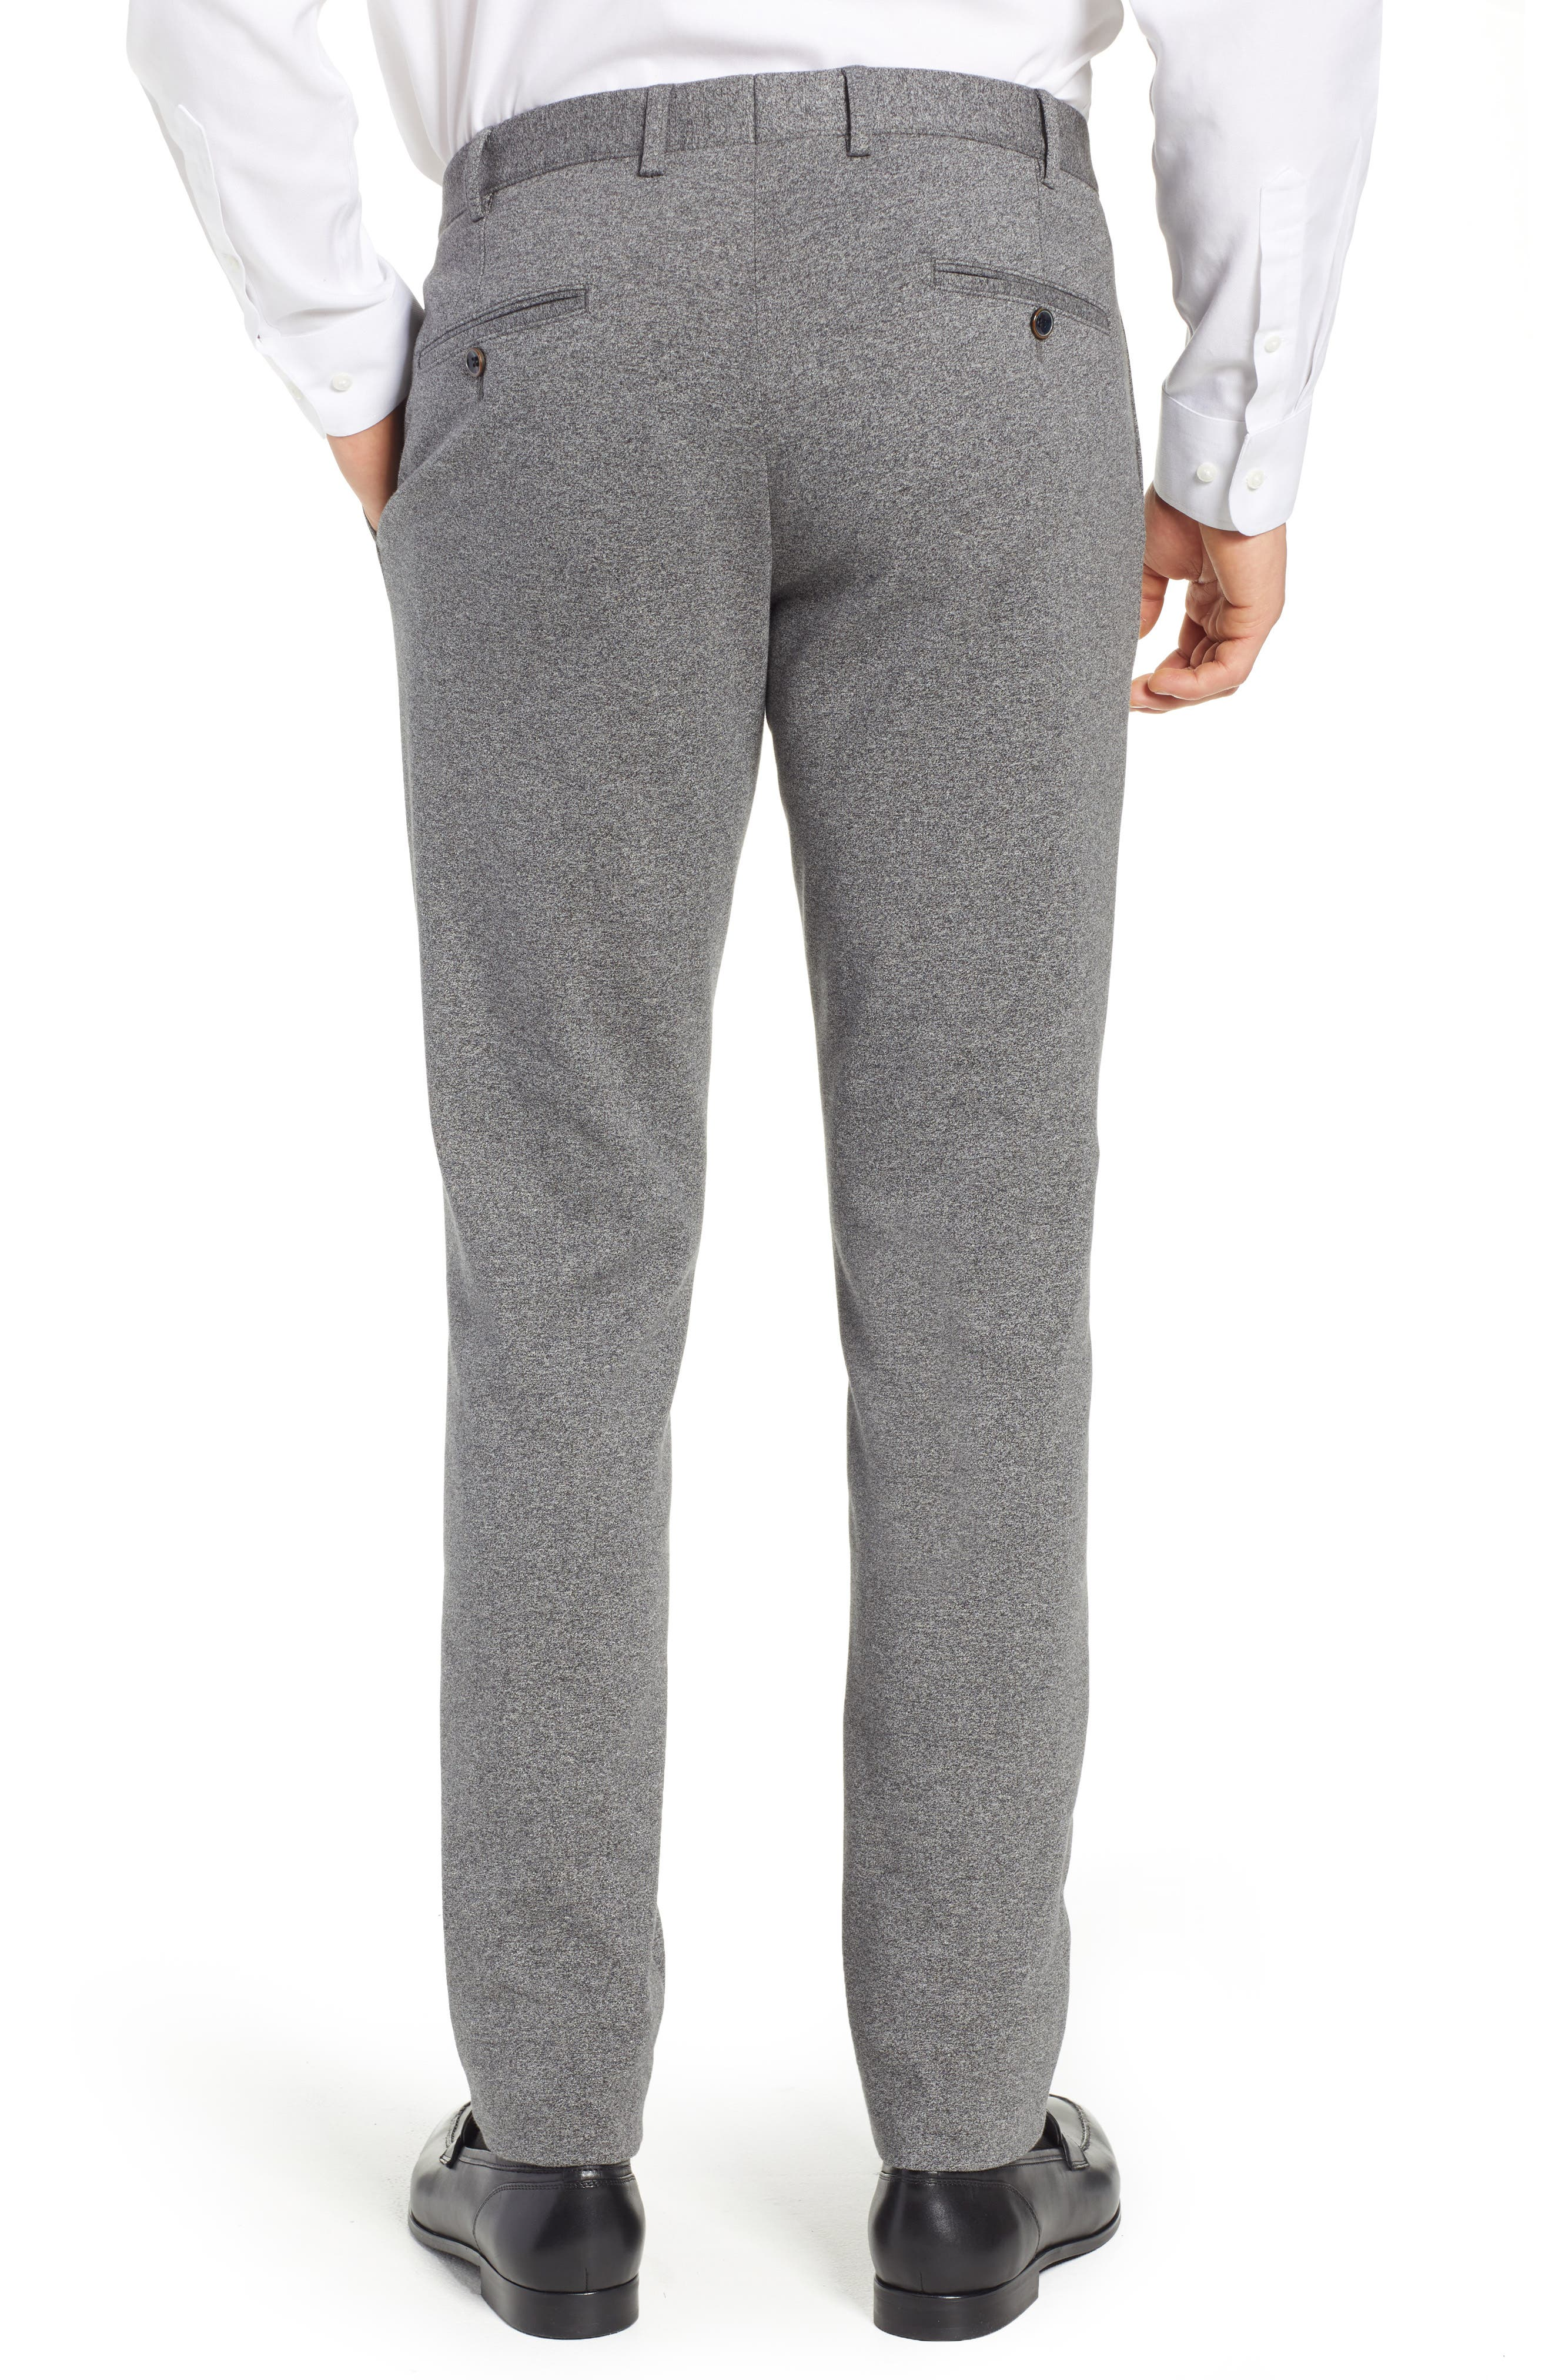 Tero Trim Fit Flat Front Solid Cotton Trousers,                             Alternate thumbnail 2, color,                             GREY